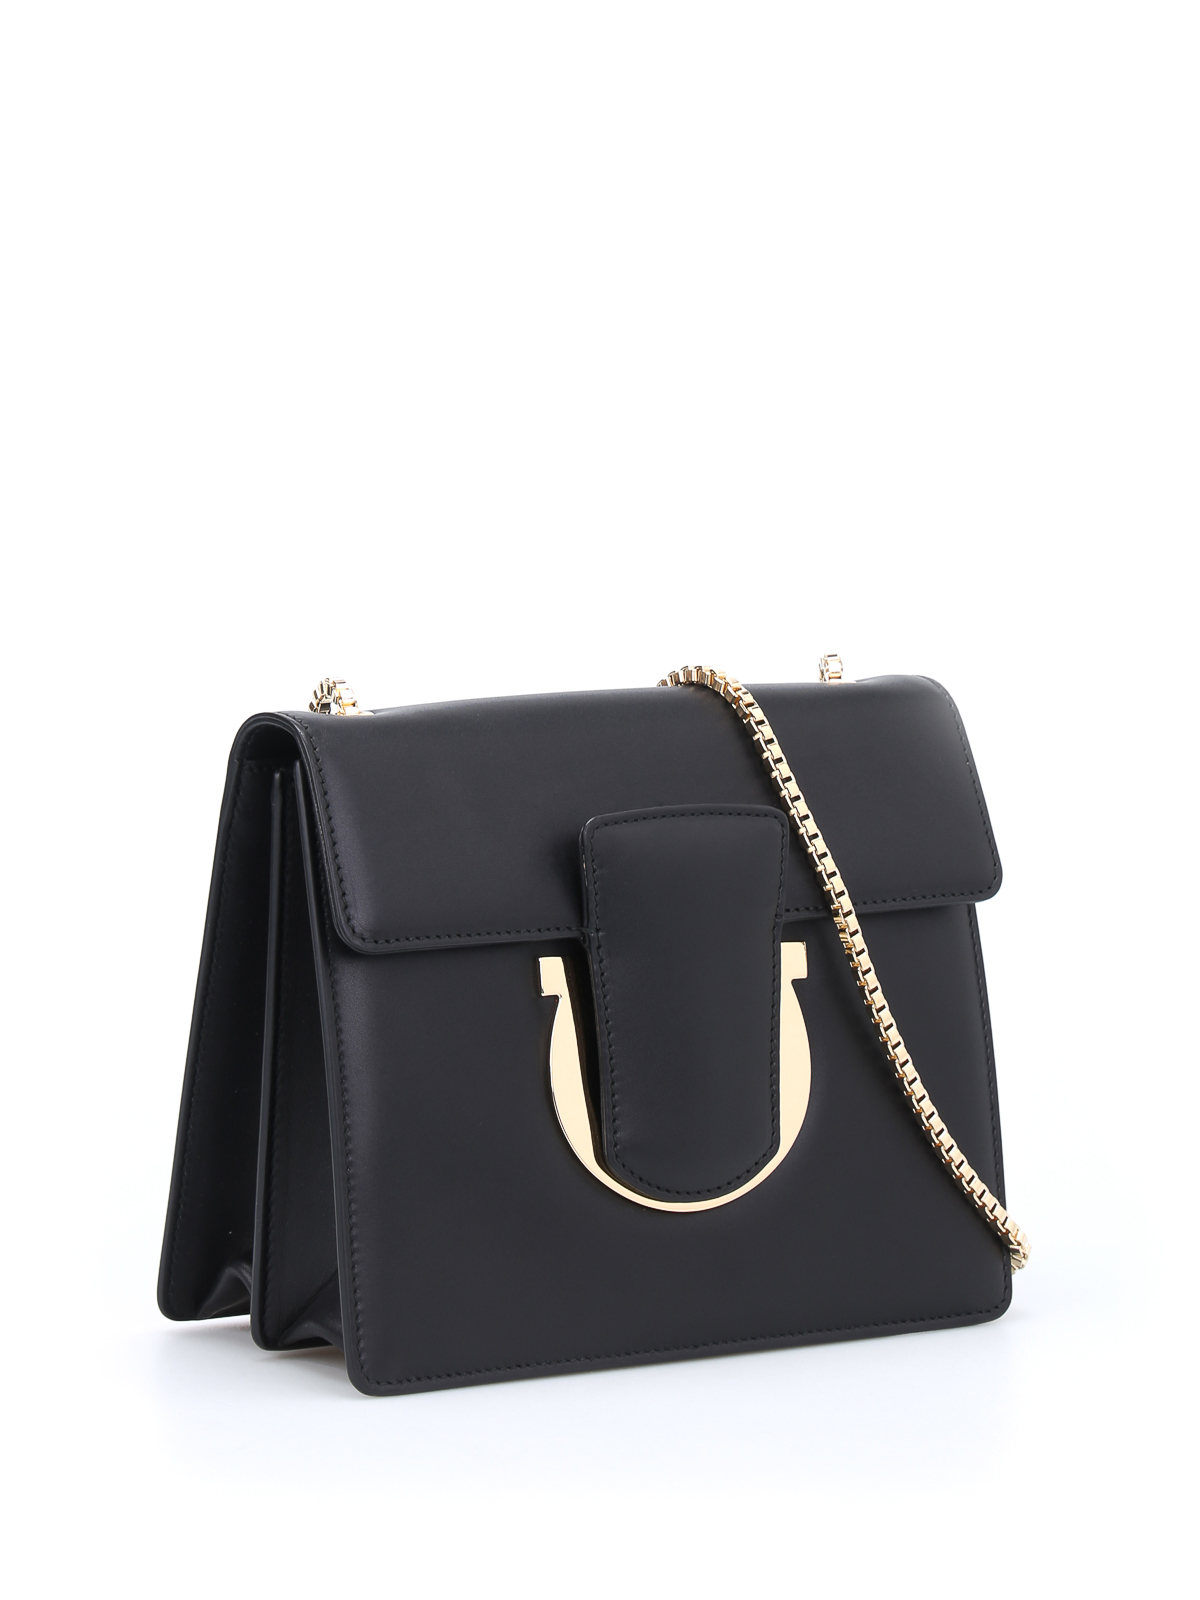 Salvatore Ferragamo Thalia leather clutch 4mvNtM